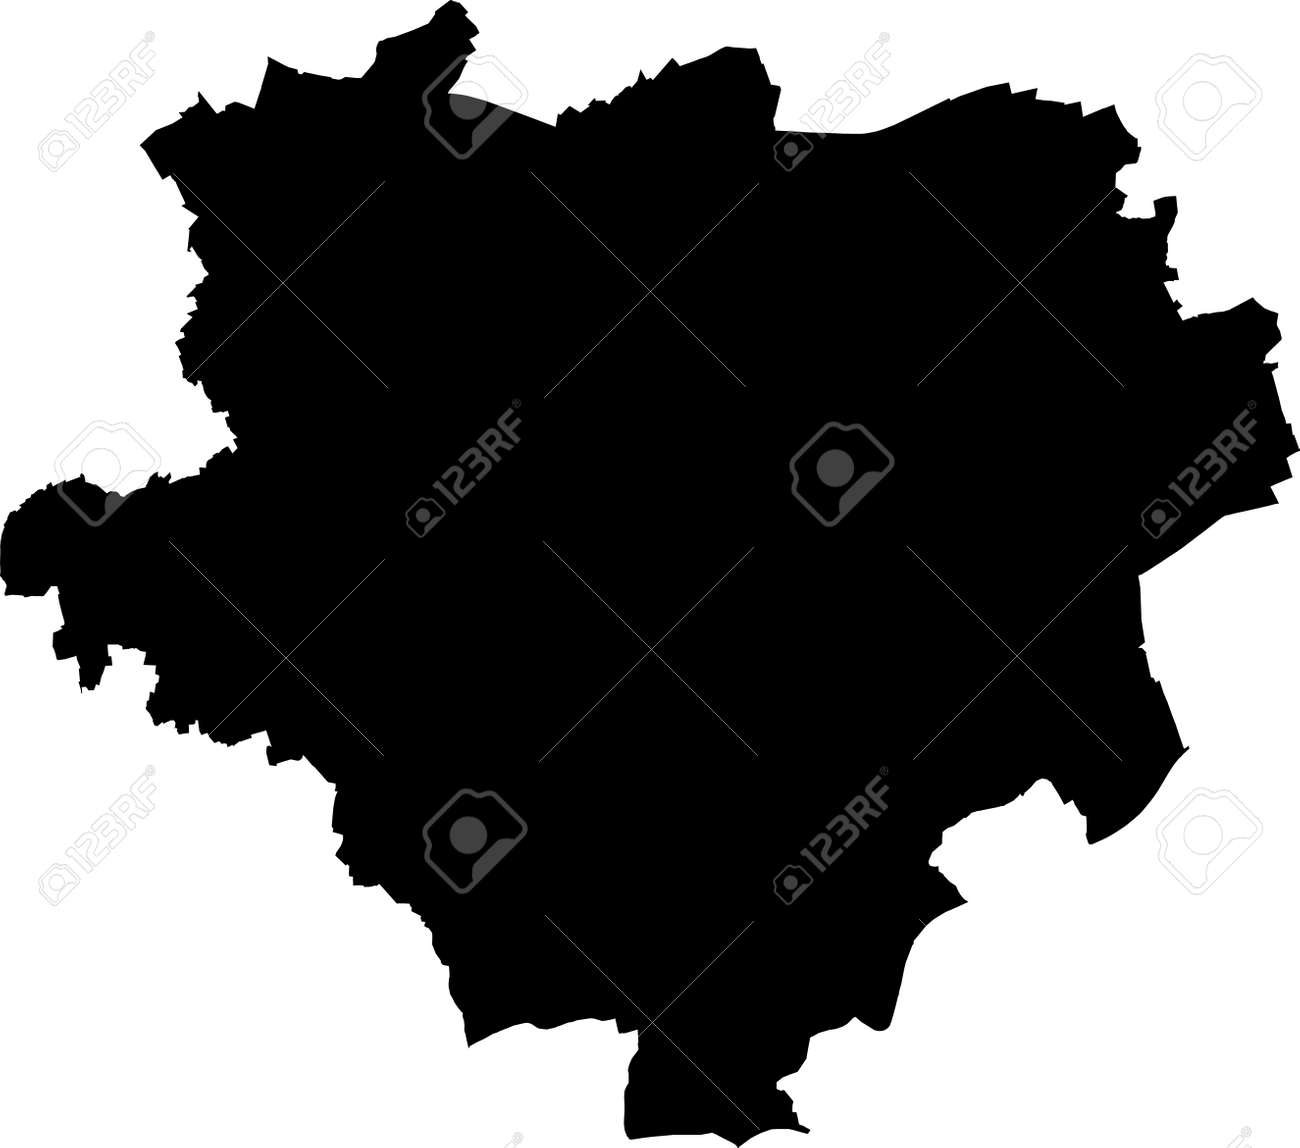 Simple vector black administrative map of the German regional capital city of Dortmund, Germany - 169986368